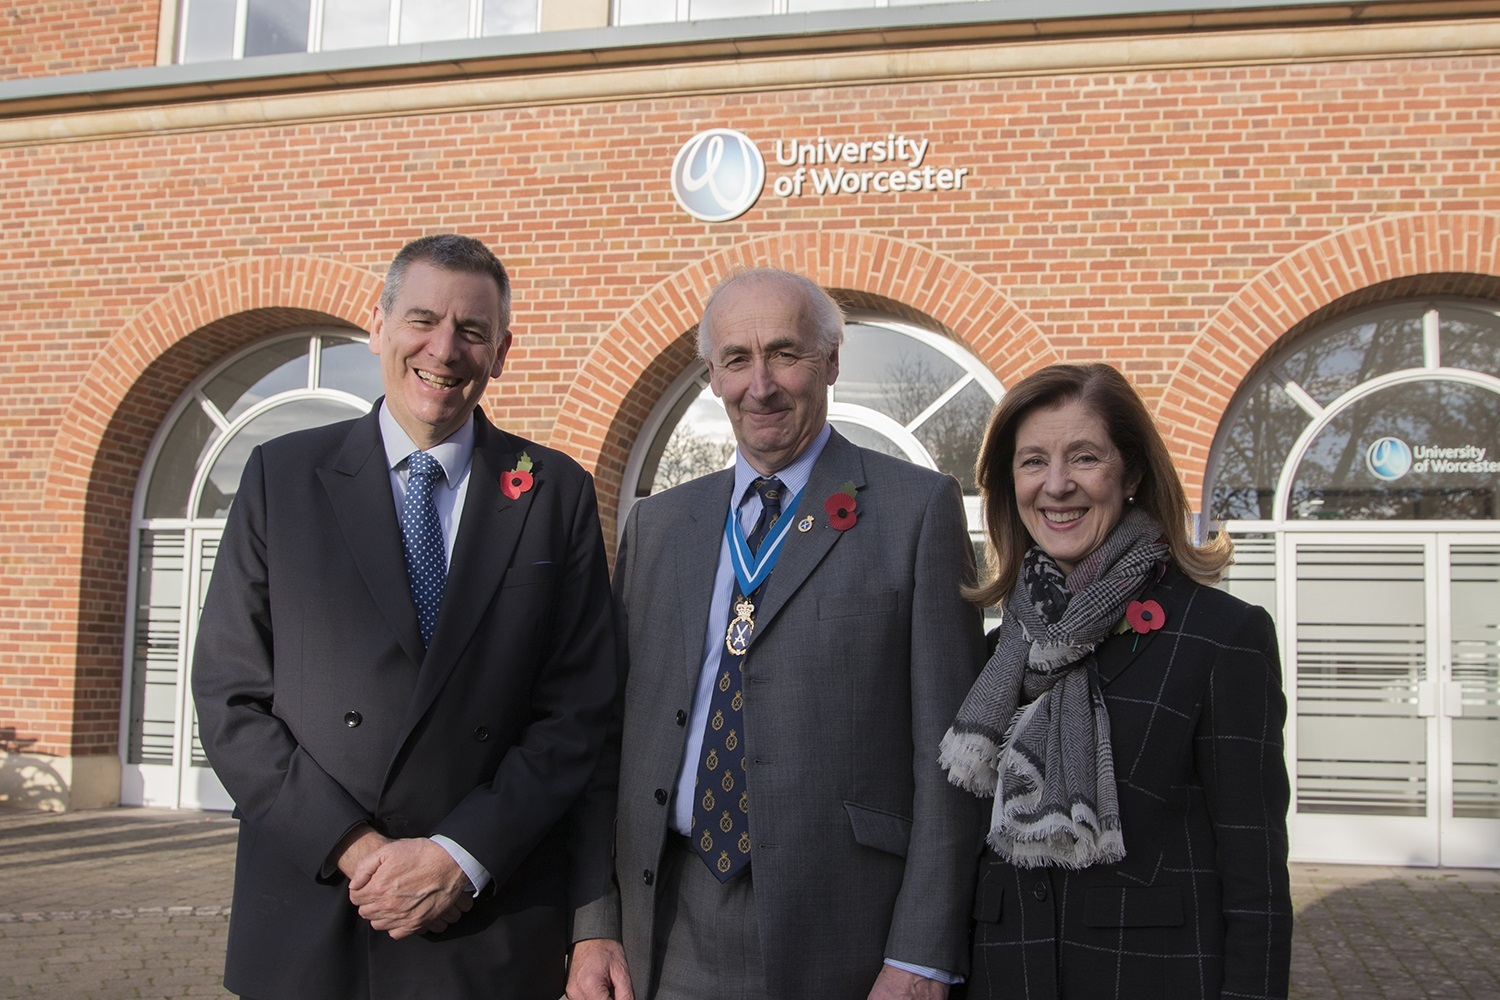 PRAISE: University of Worcester Vice Chancellor, Professor David Green, High Sheriff of Worcestershire, Stephen Betts, and his wife Caroline.